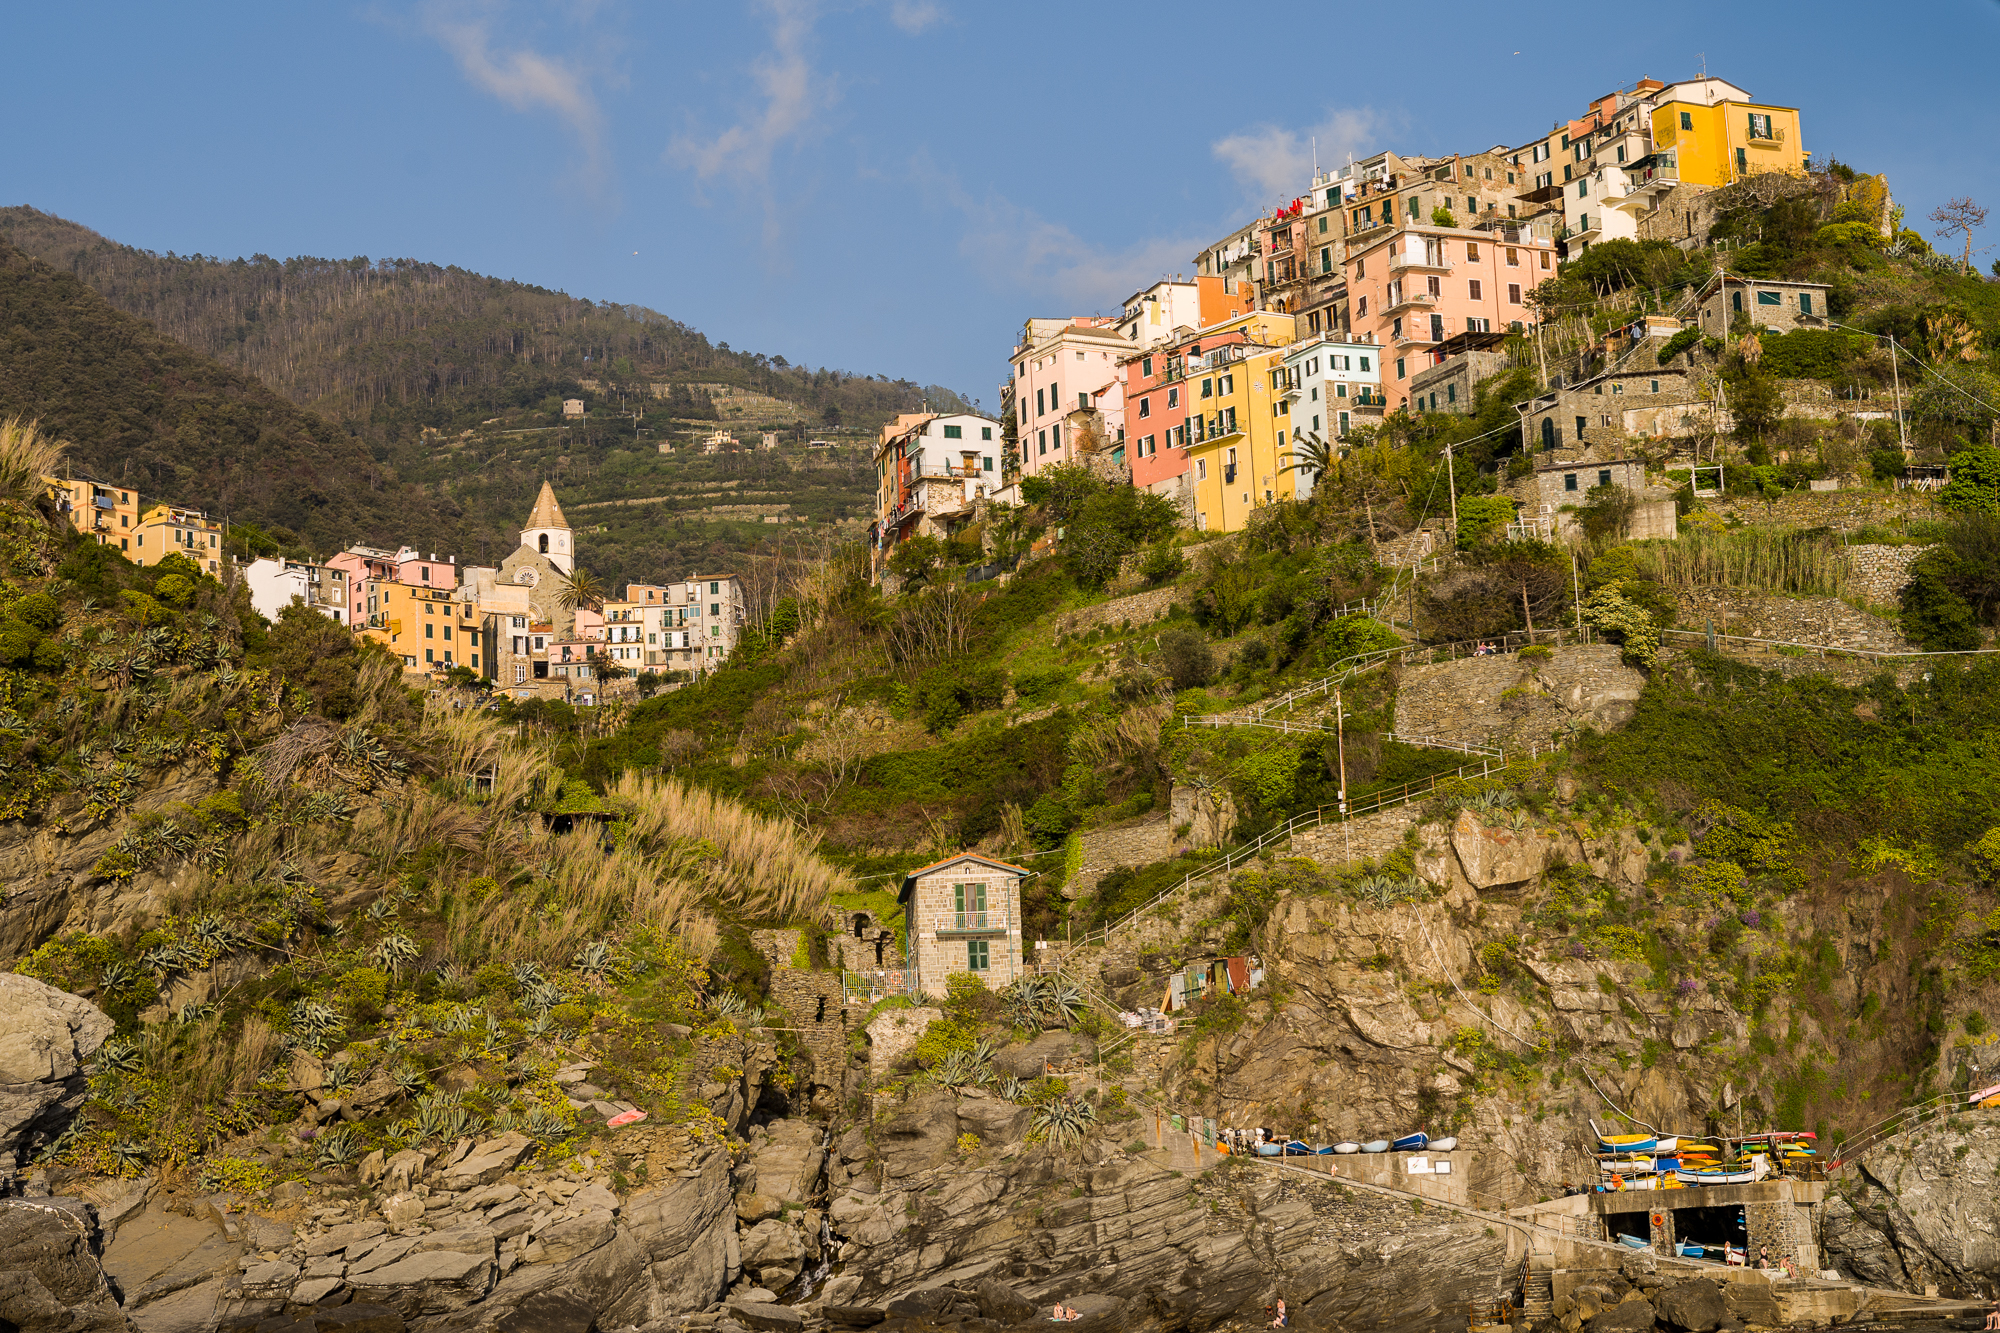 Cinque Terre from the water